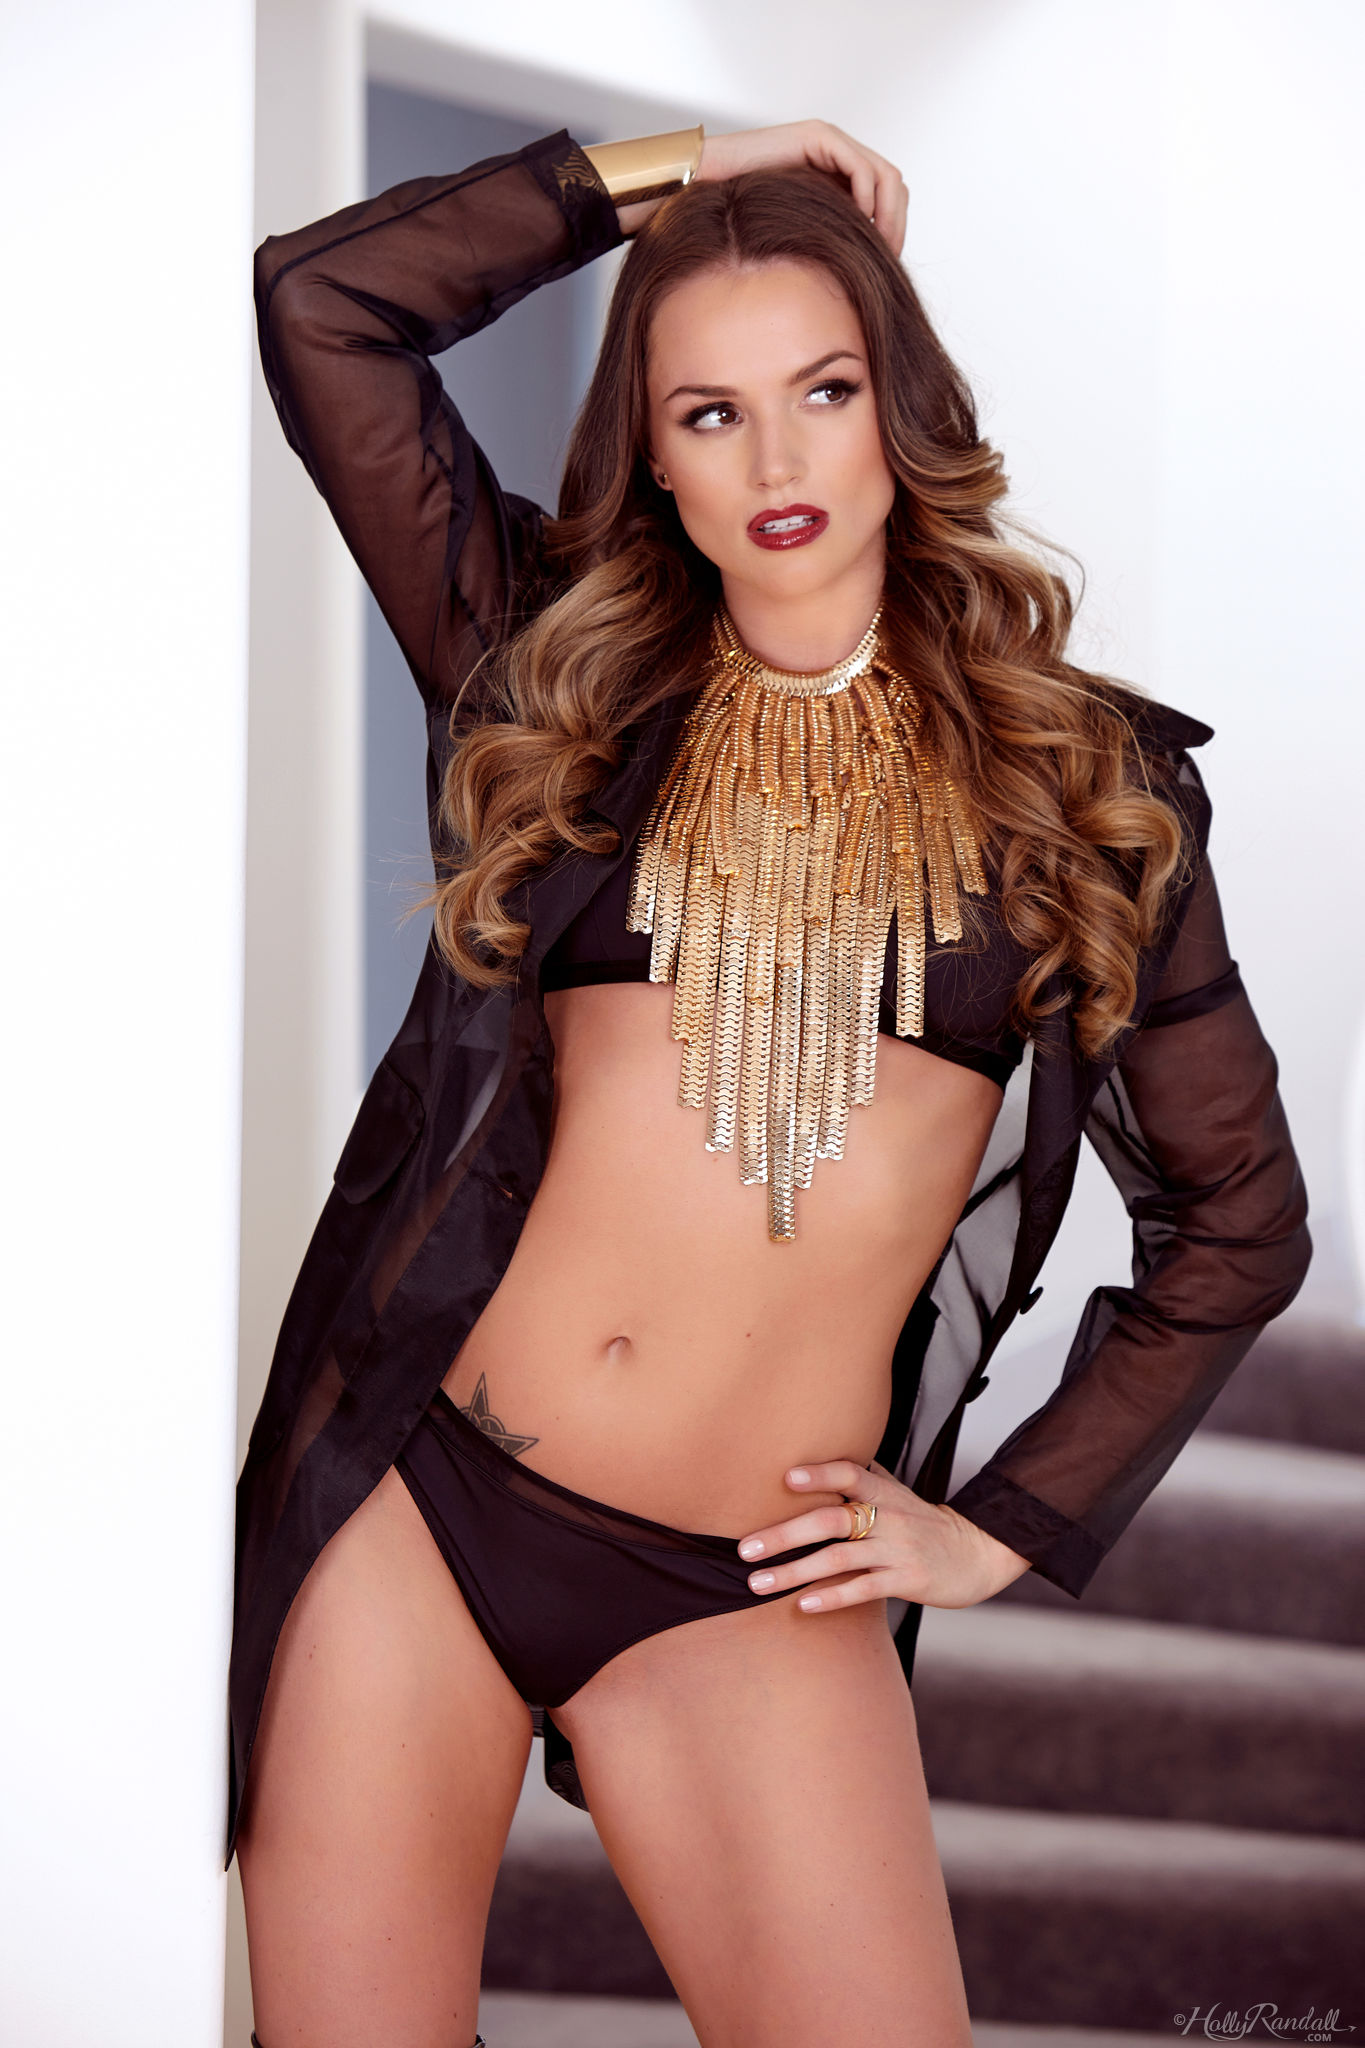 Tori Black nude and Hotter Than Ever | A Tribute to Holly Randall